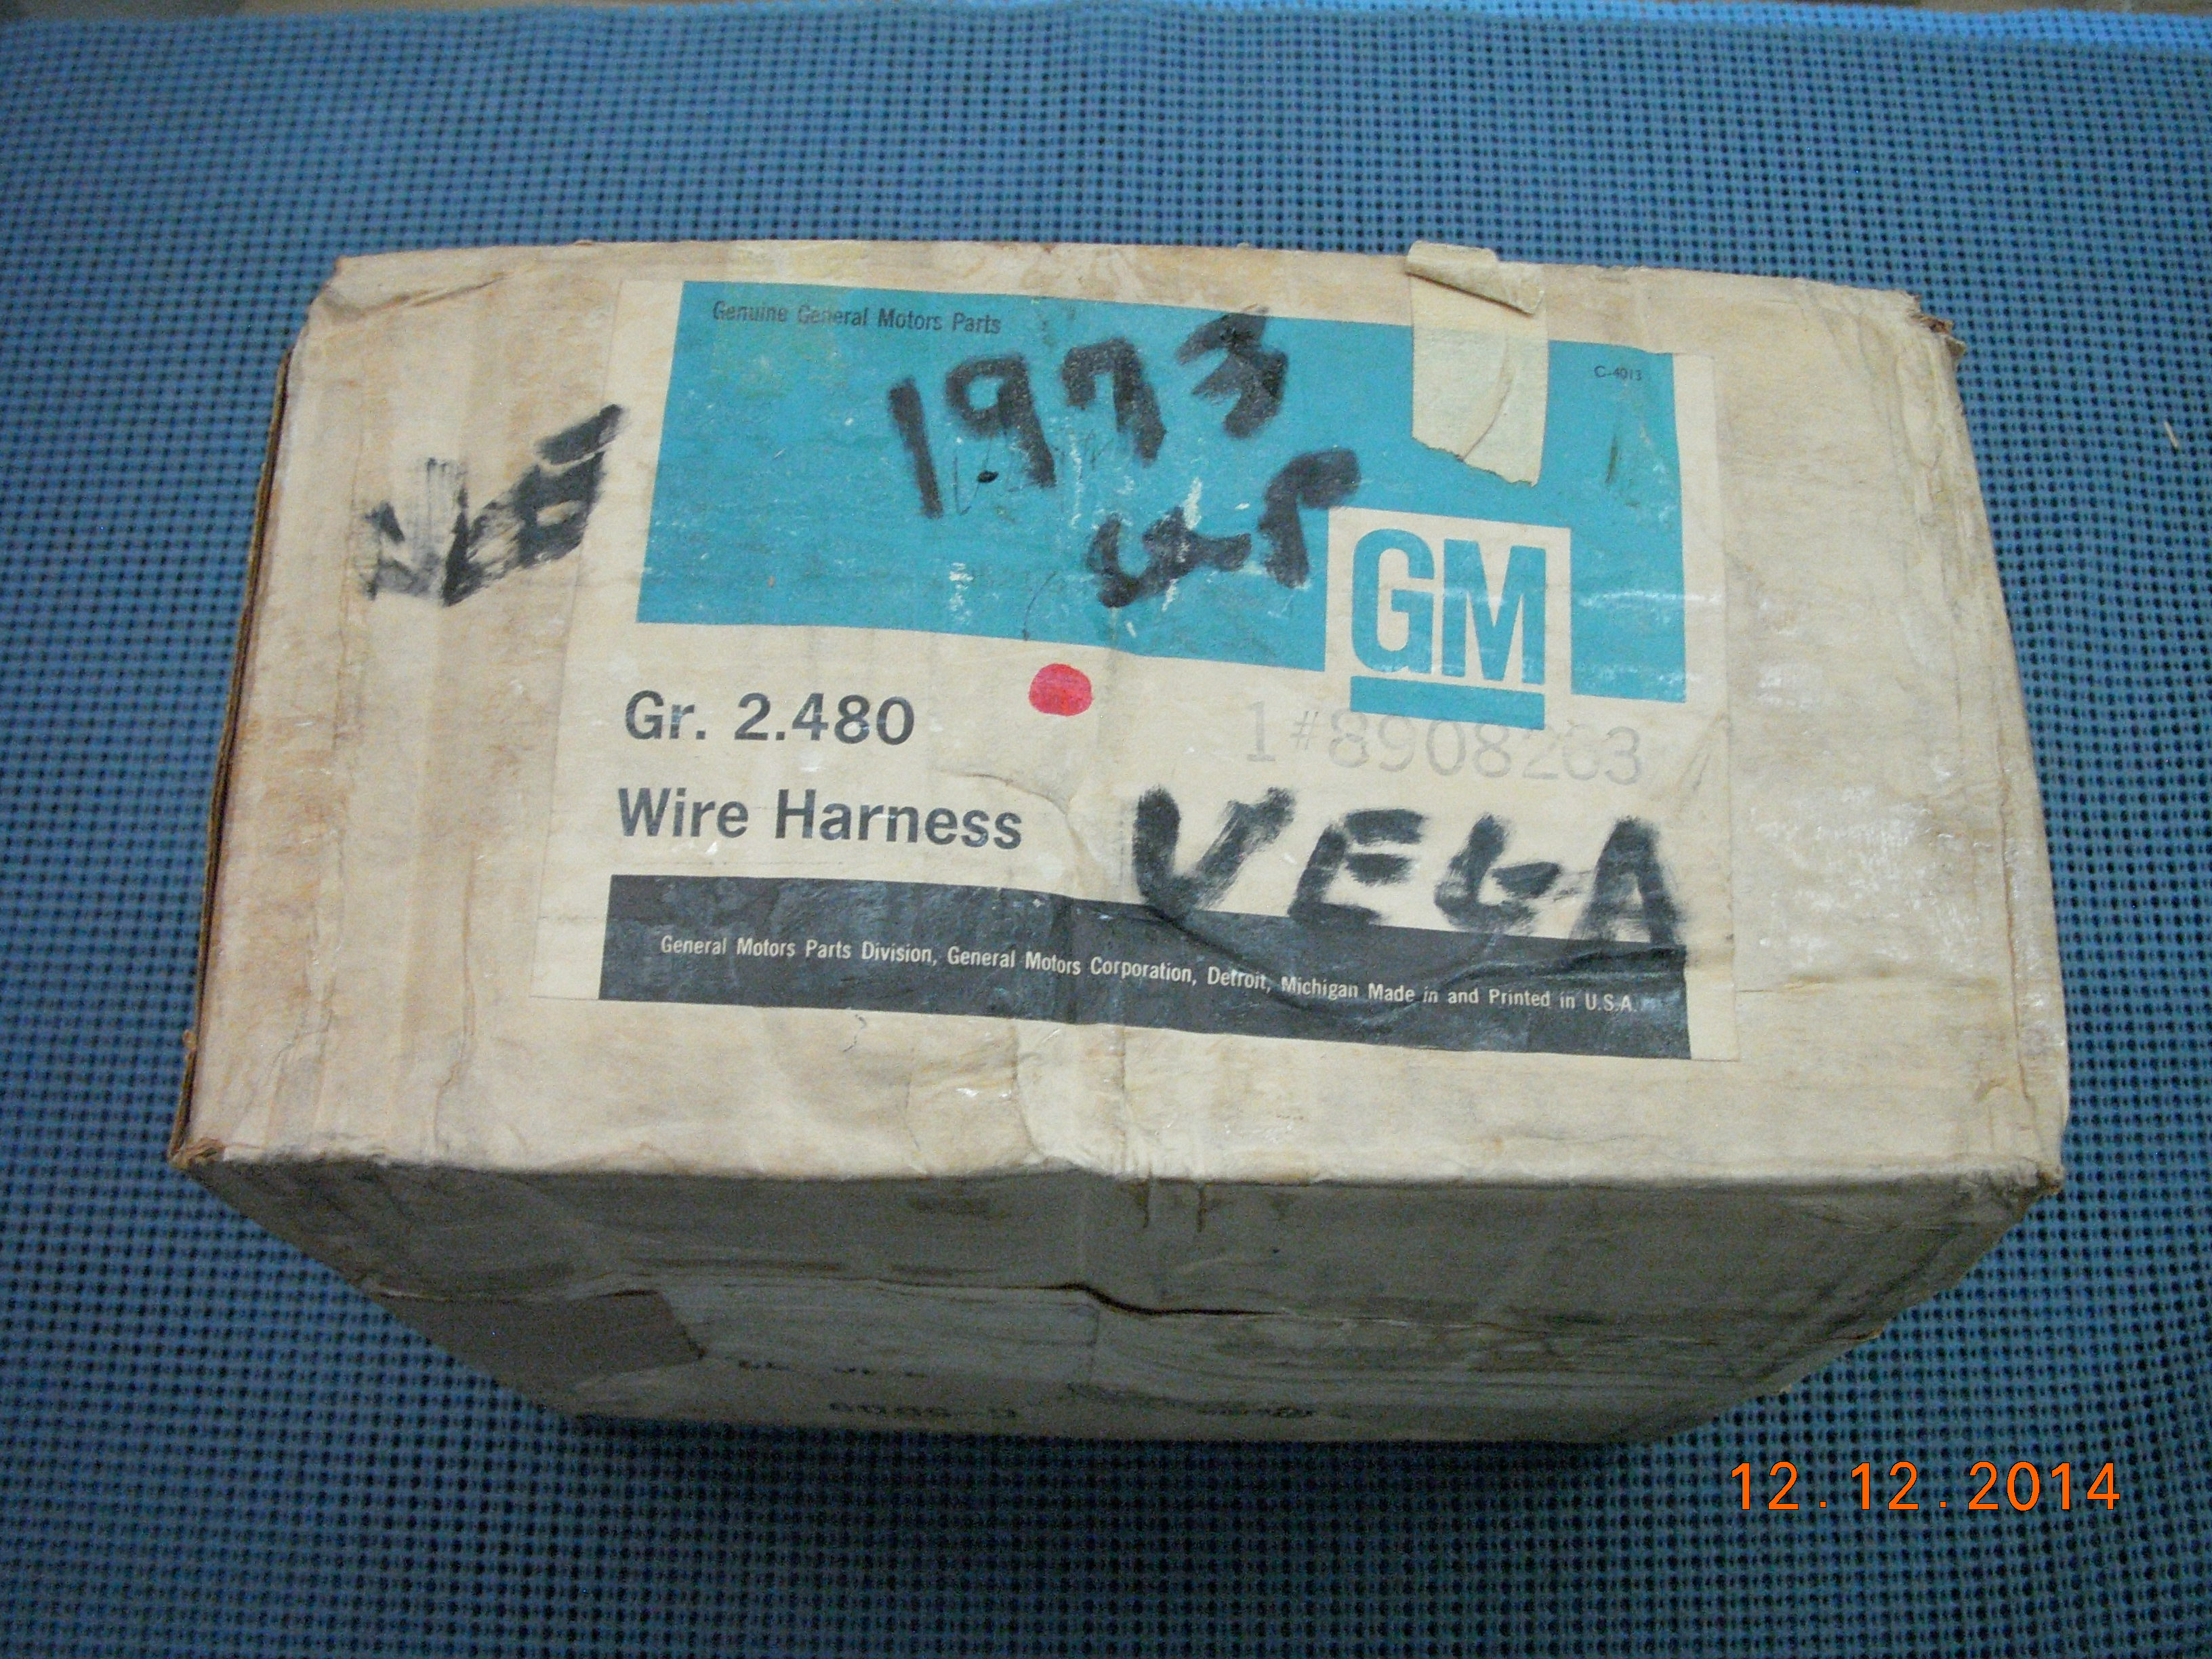 1973 chevrolet vega engine and generator wiring harness nos rh oldsobsolete com GM Wiring Harness Connectors Chevy Wiring Harness Diagram